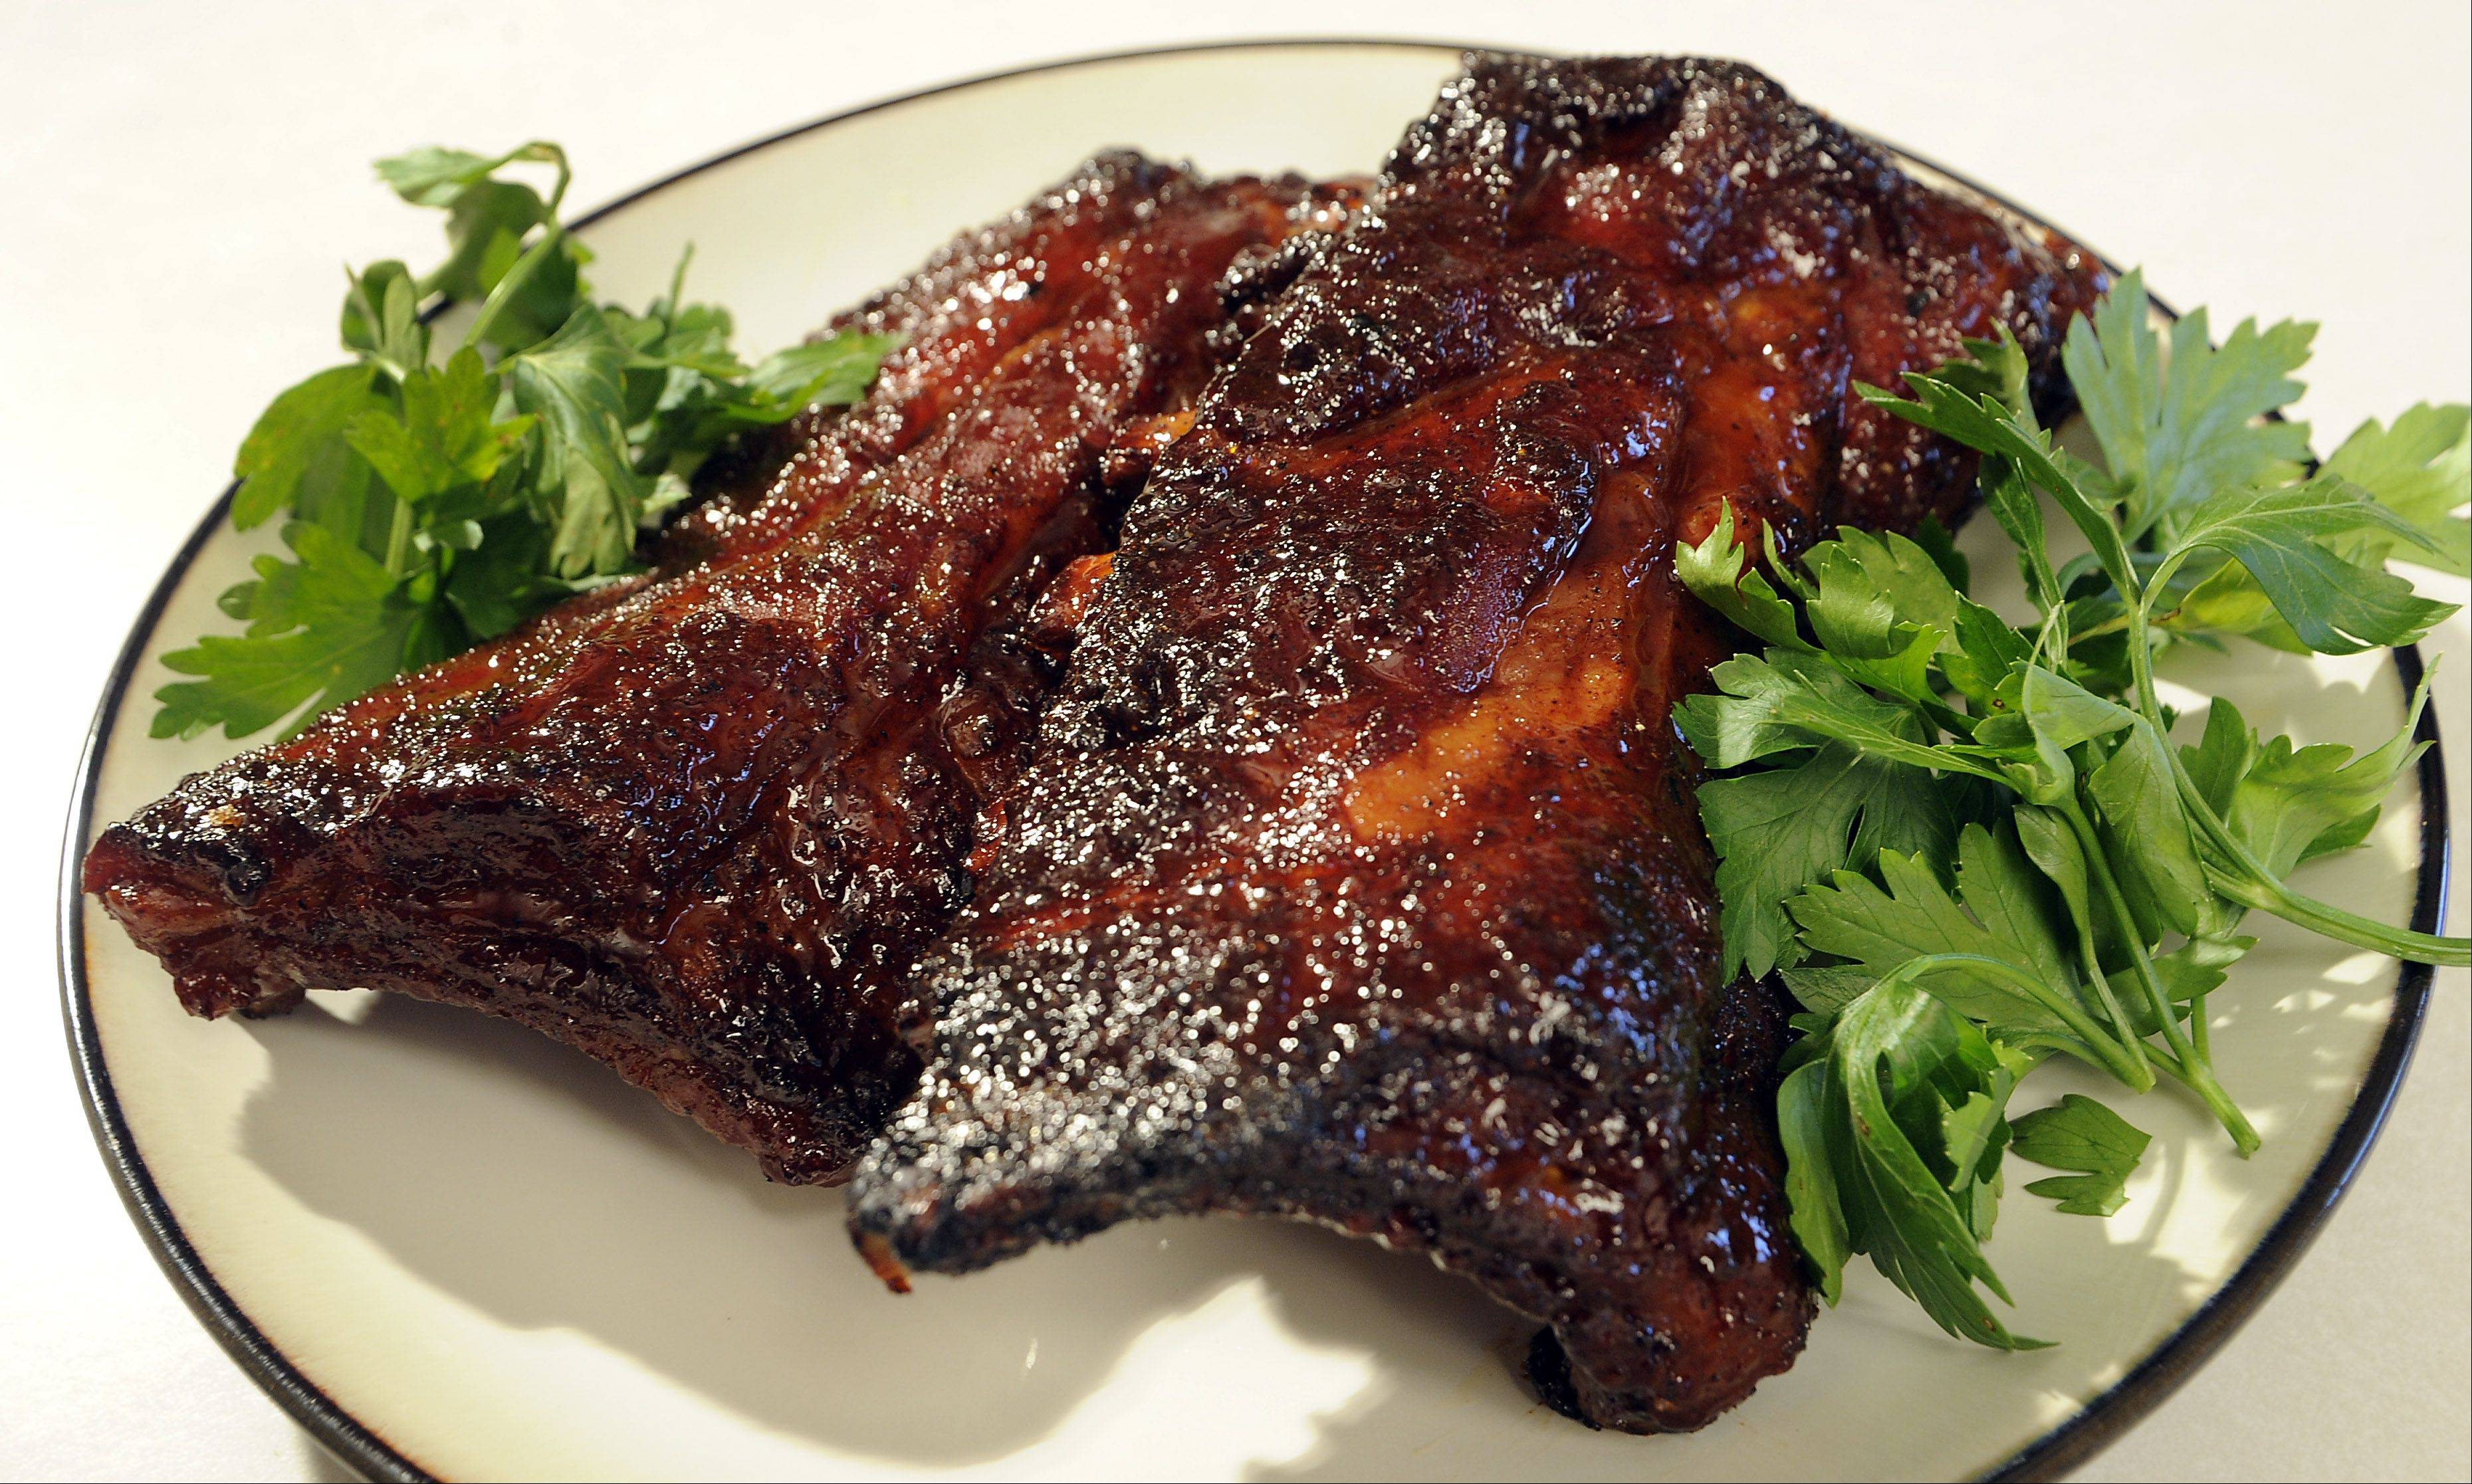 Fall Off the Bone Slow Cooked Baby Back Ribs